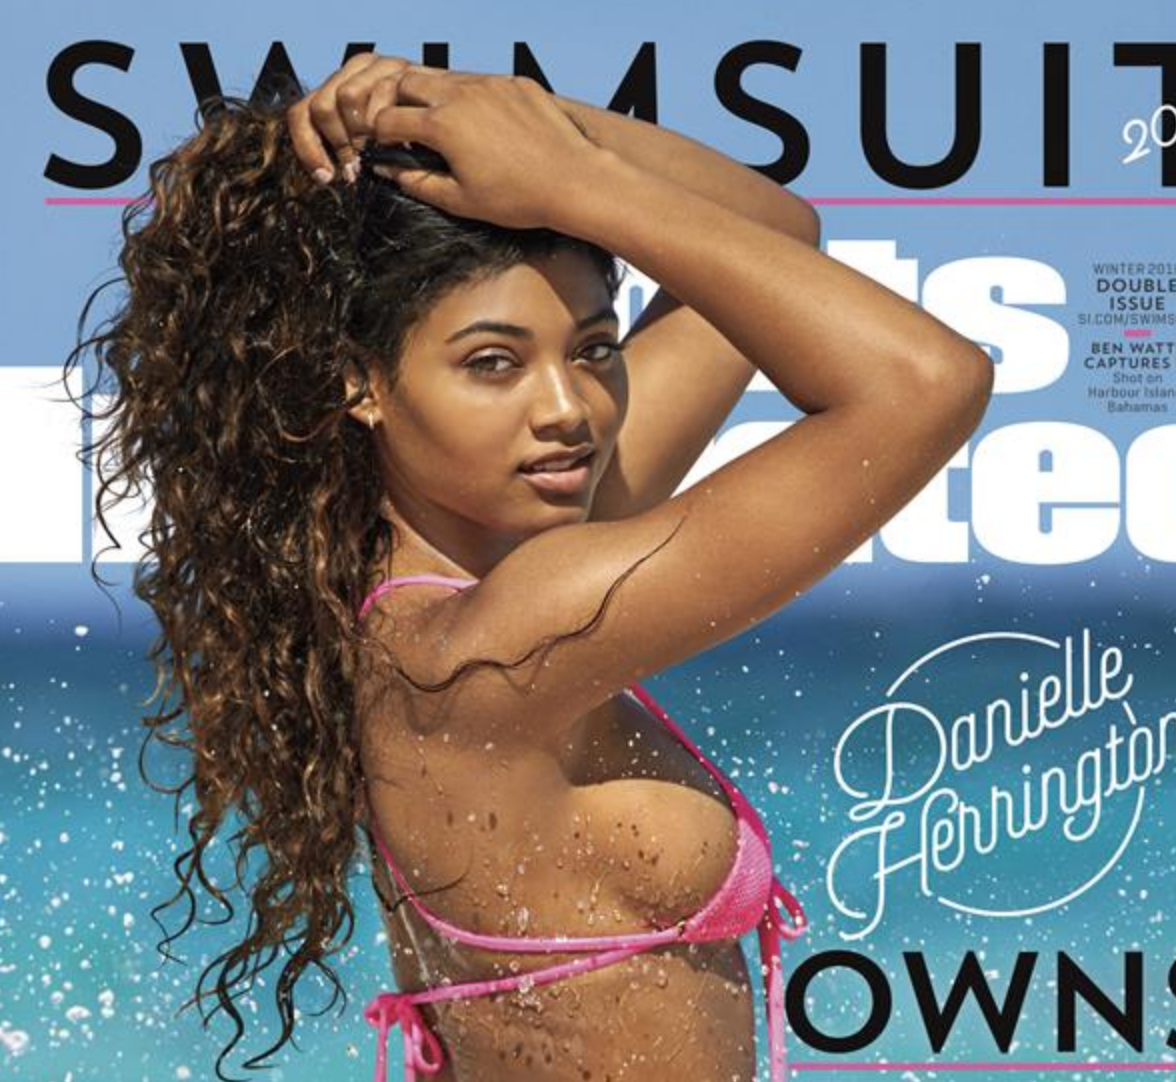 Rookie Model Danielle Harrington Nabs SI Swimsuit Issue Cover [SFW PIC]